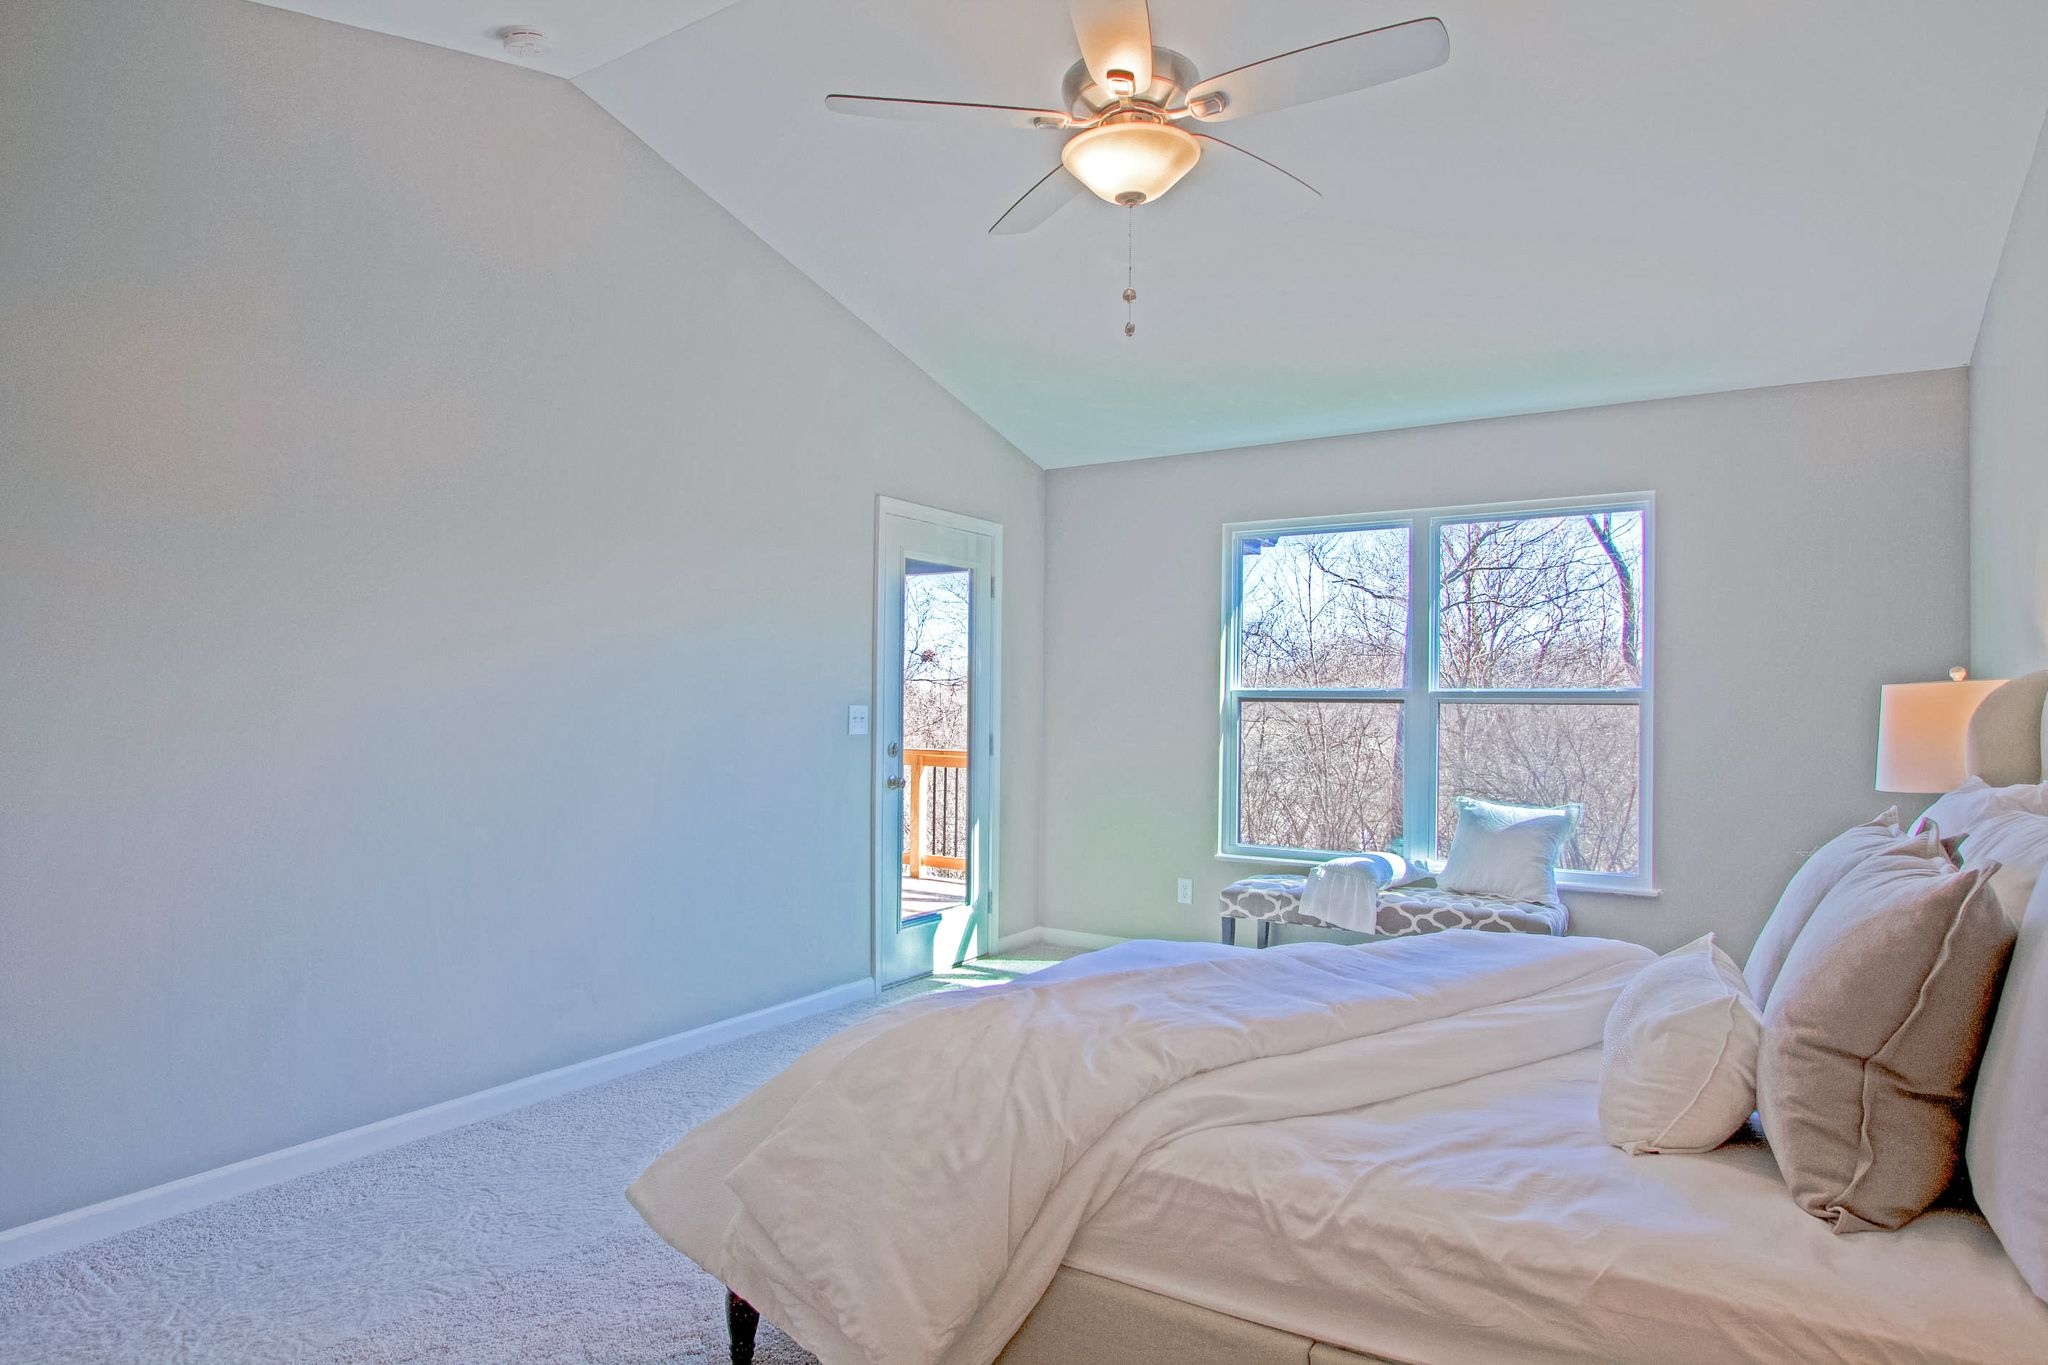 Bedroom featured in the Houston B By C.A. Jones, Inc.  in St. Louis, IL